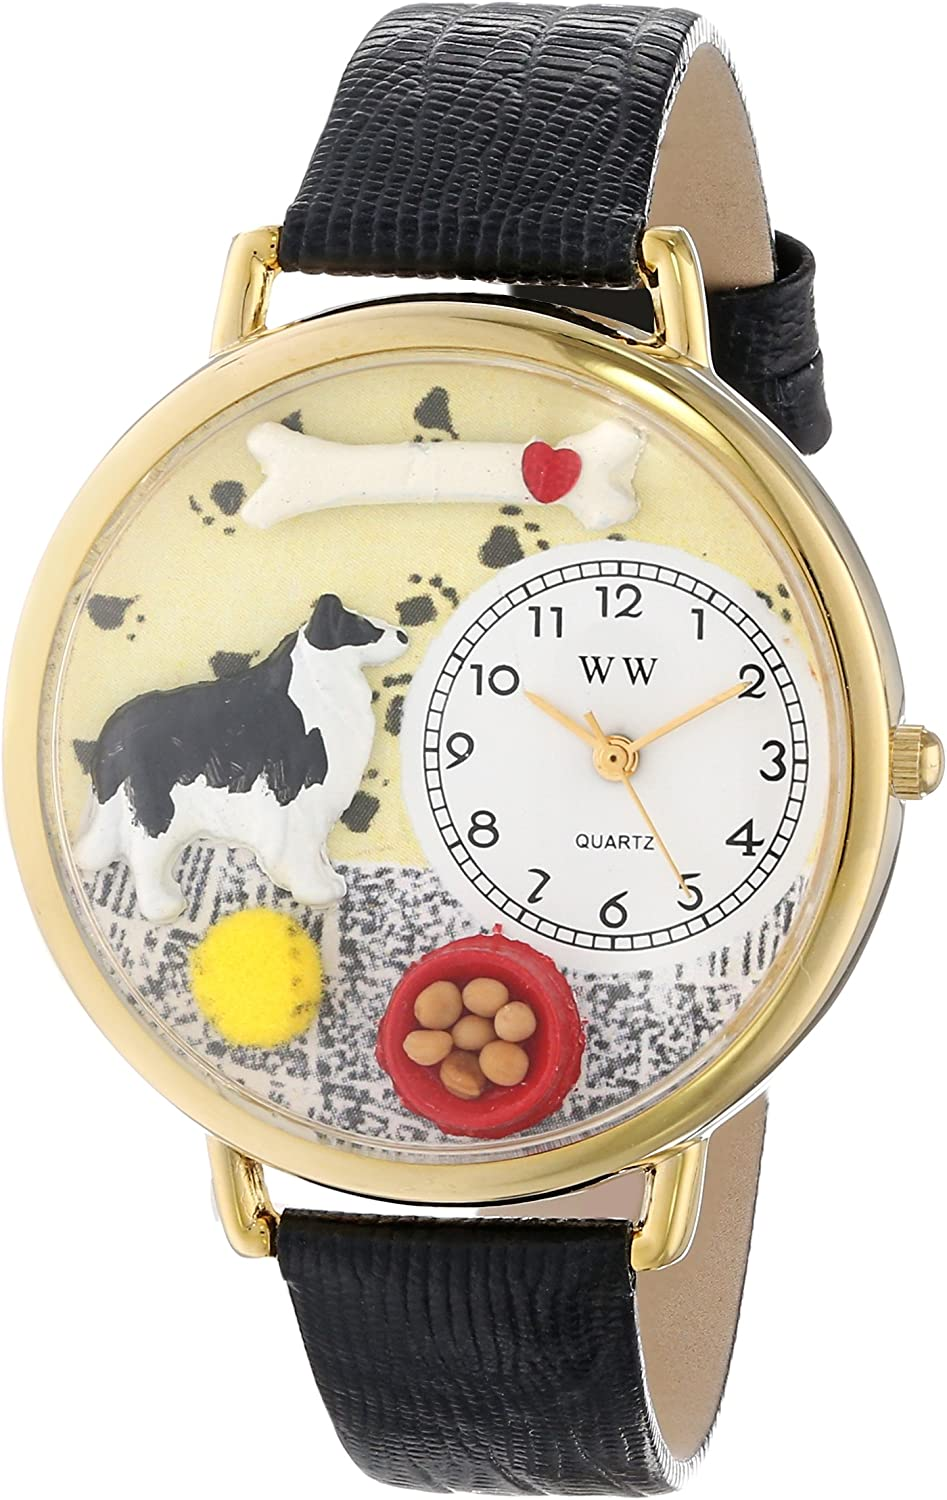 Whimsical Watches Unisex G0130028 Border Collie Black Skin Leather Watch